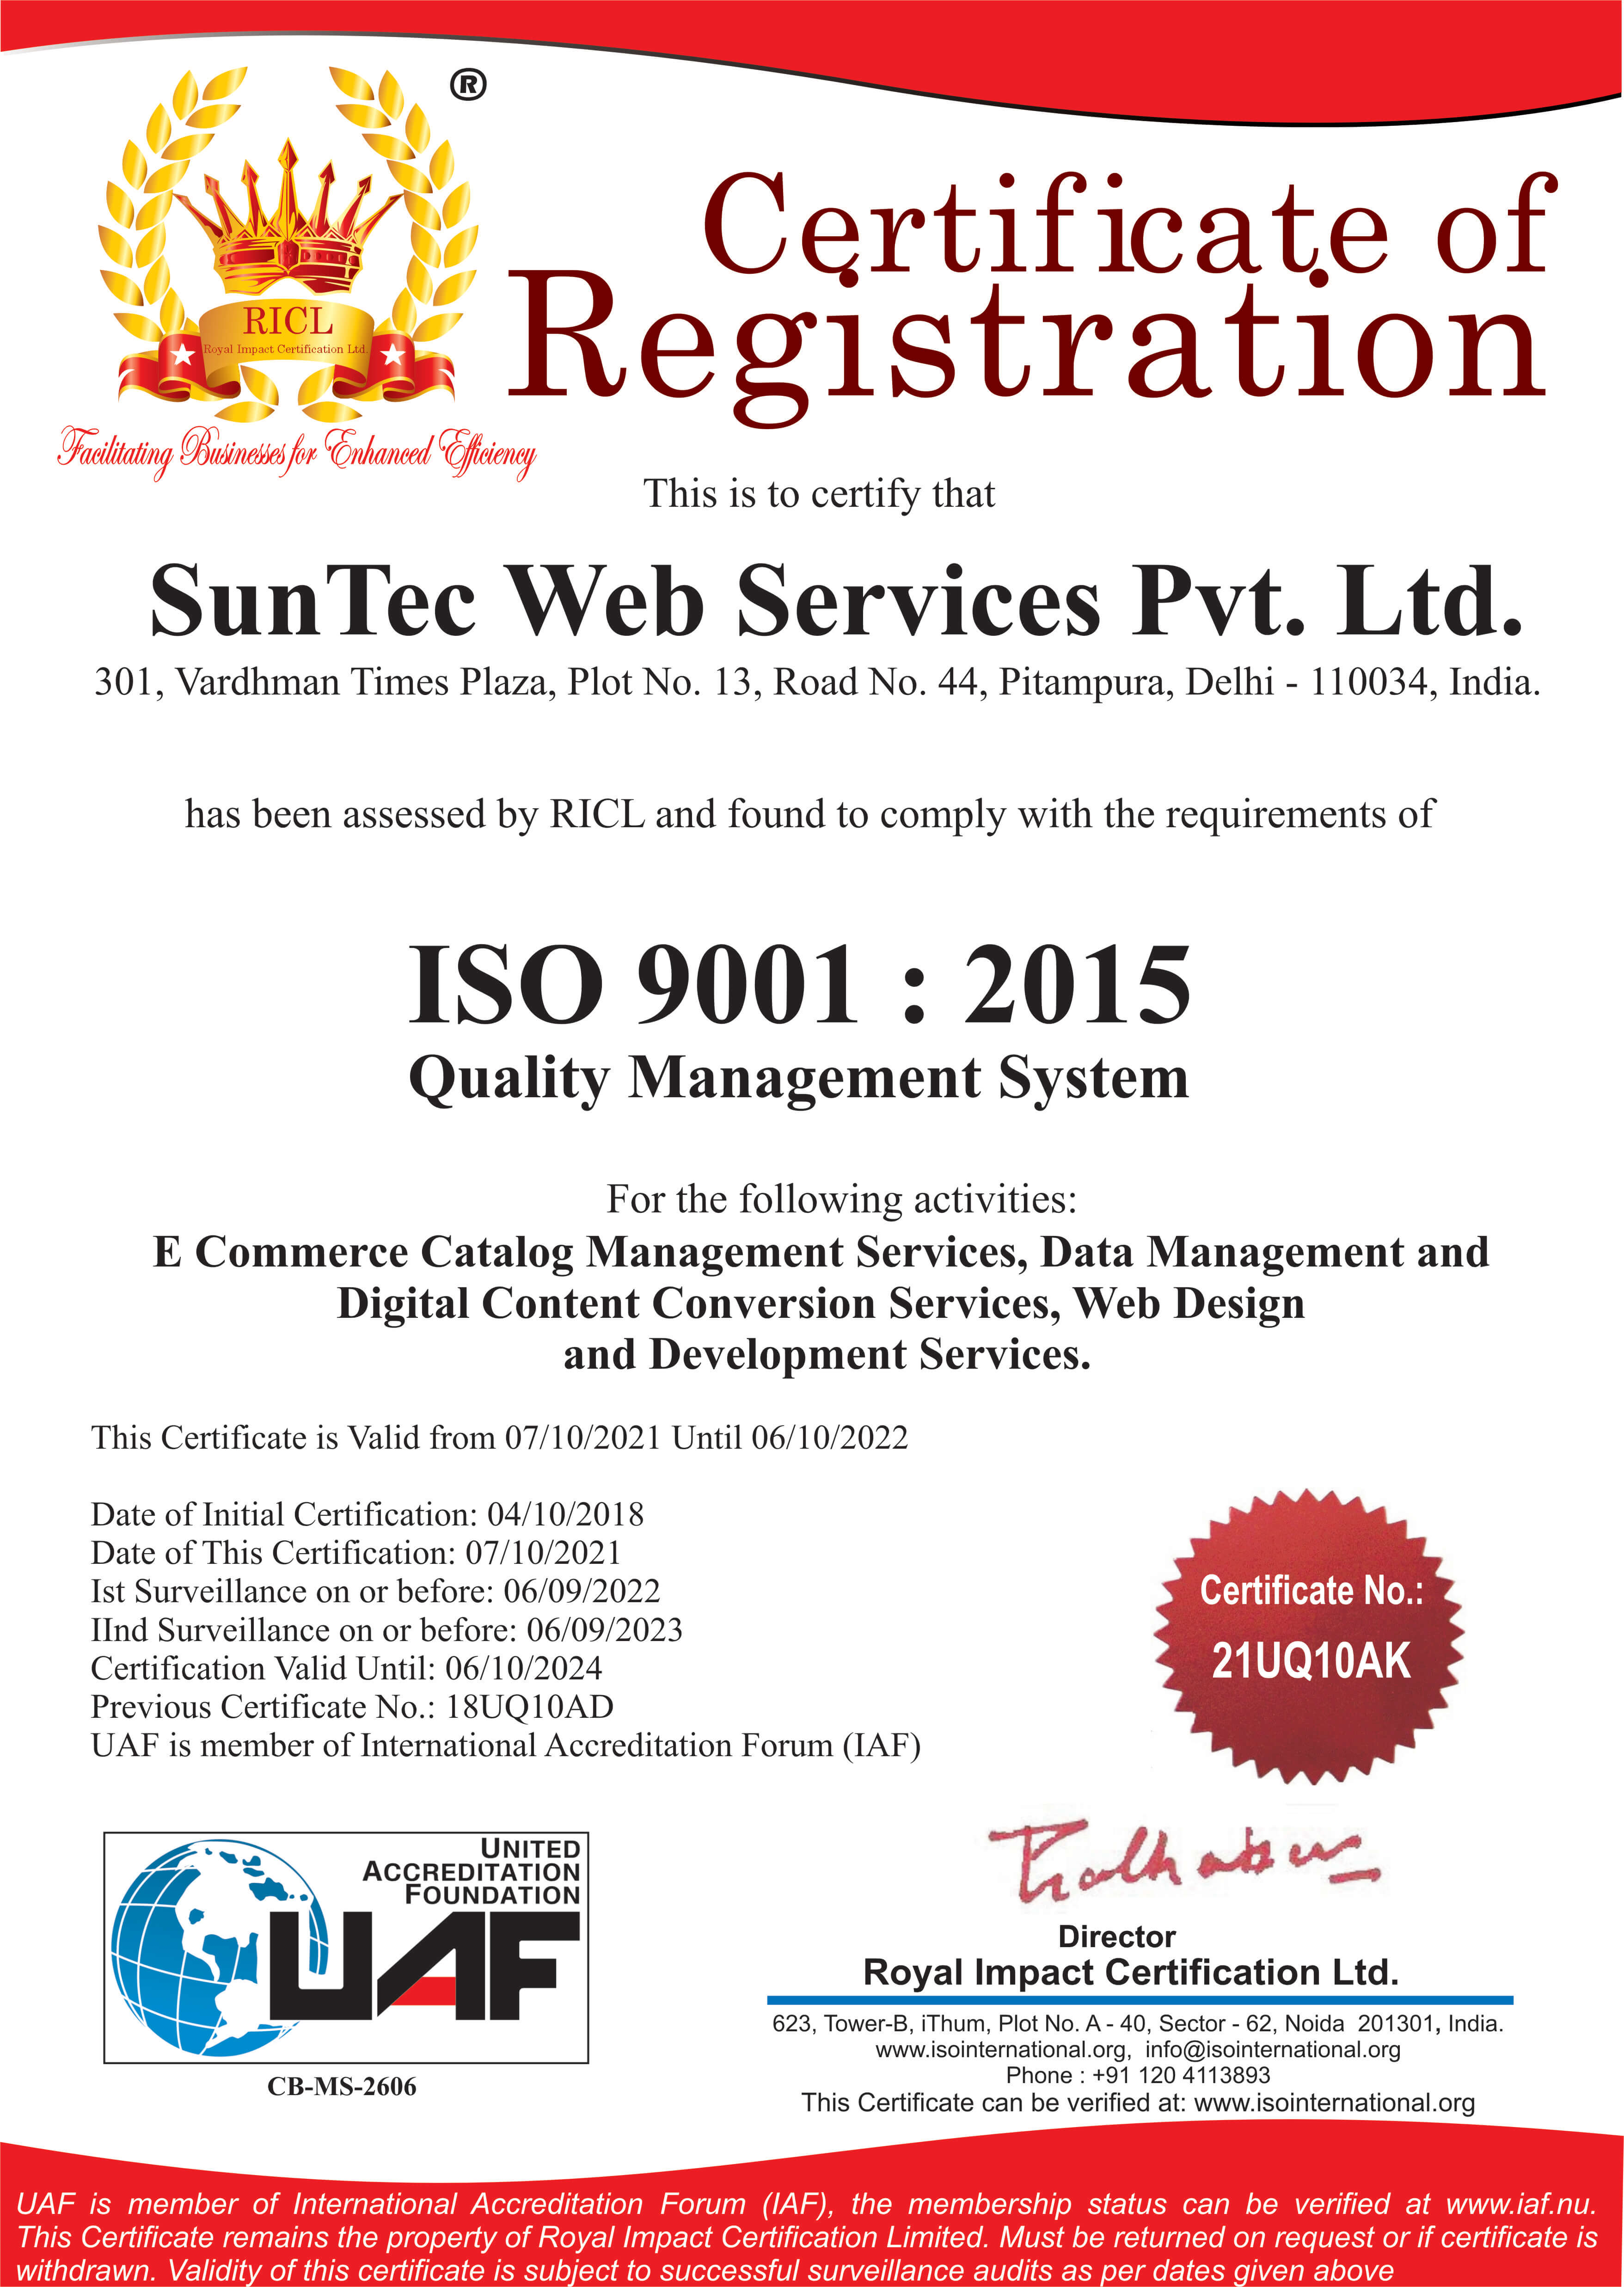 SunTec India is ISO 9001:2015 Certified for Quality Management